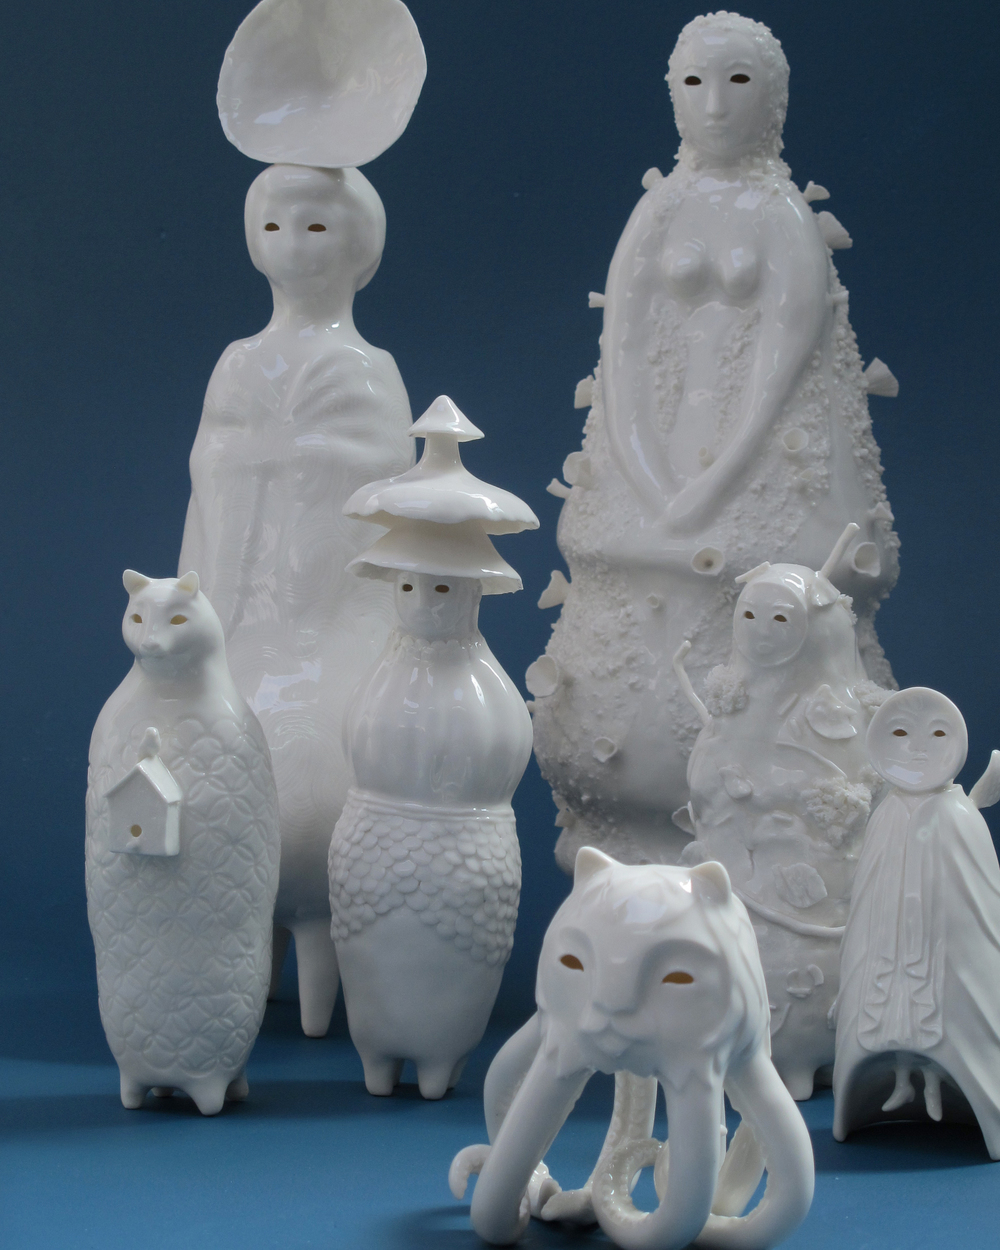 ceramic-artist-animals-mythical-sophie-woodrow.j.jpeg